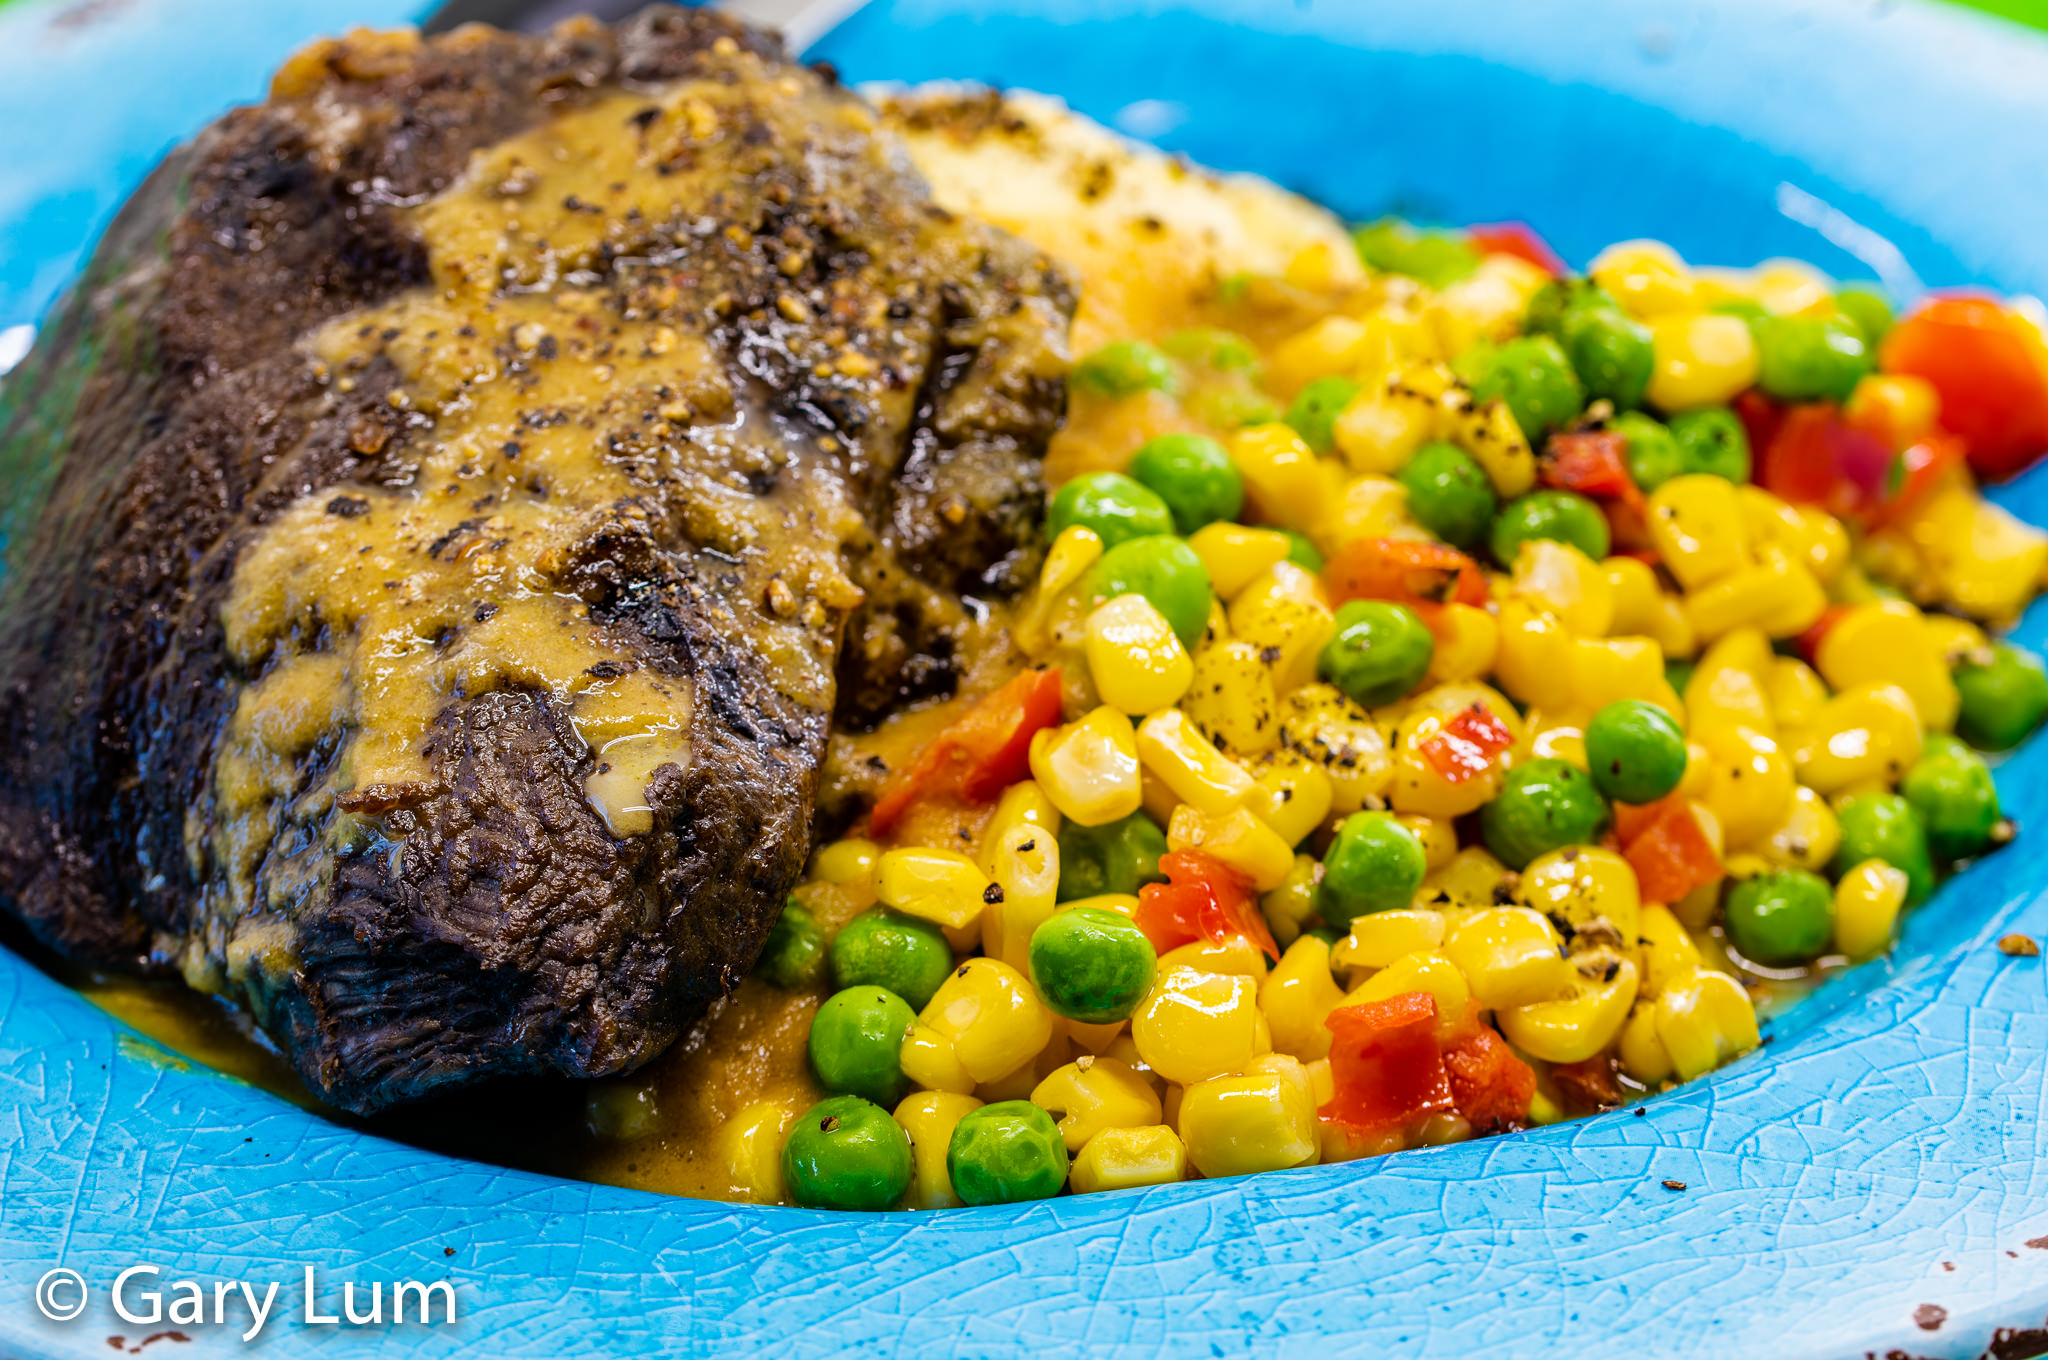 Slow cooker beef cheeks with potato mash and gravy served with peas and corn. Gary Lum.